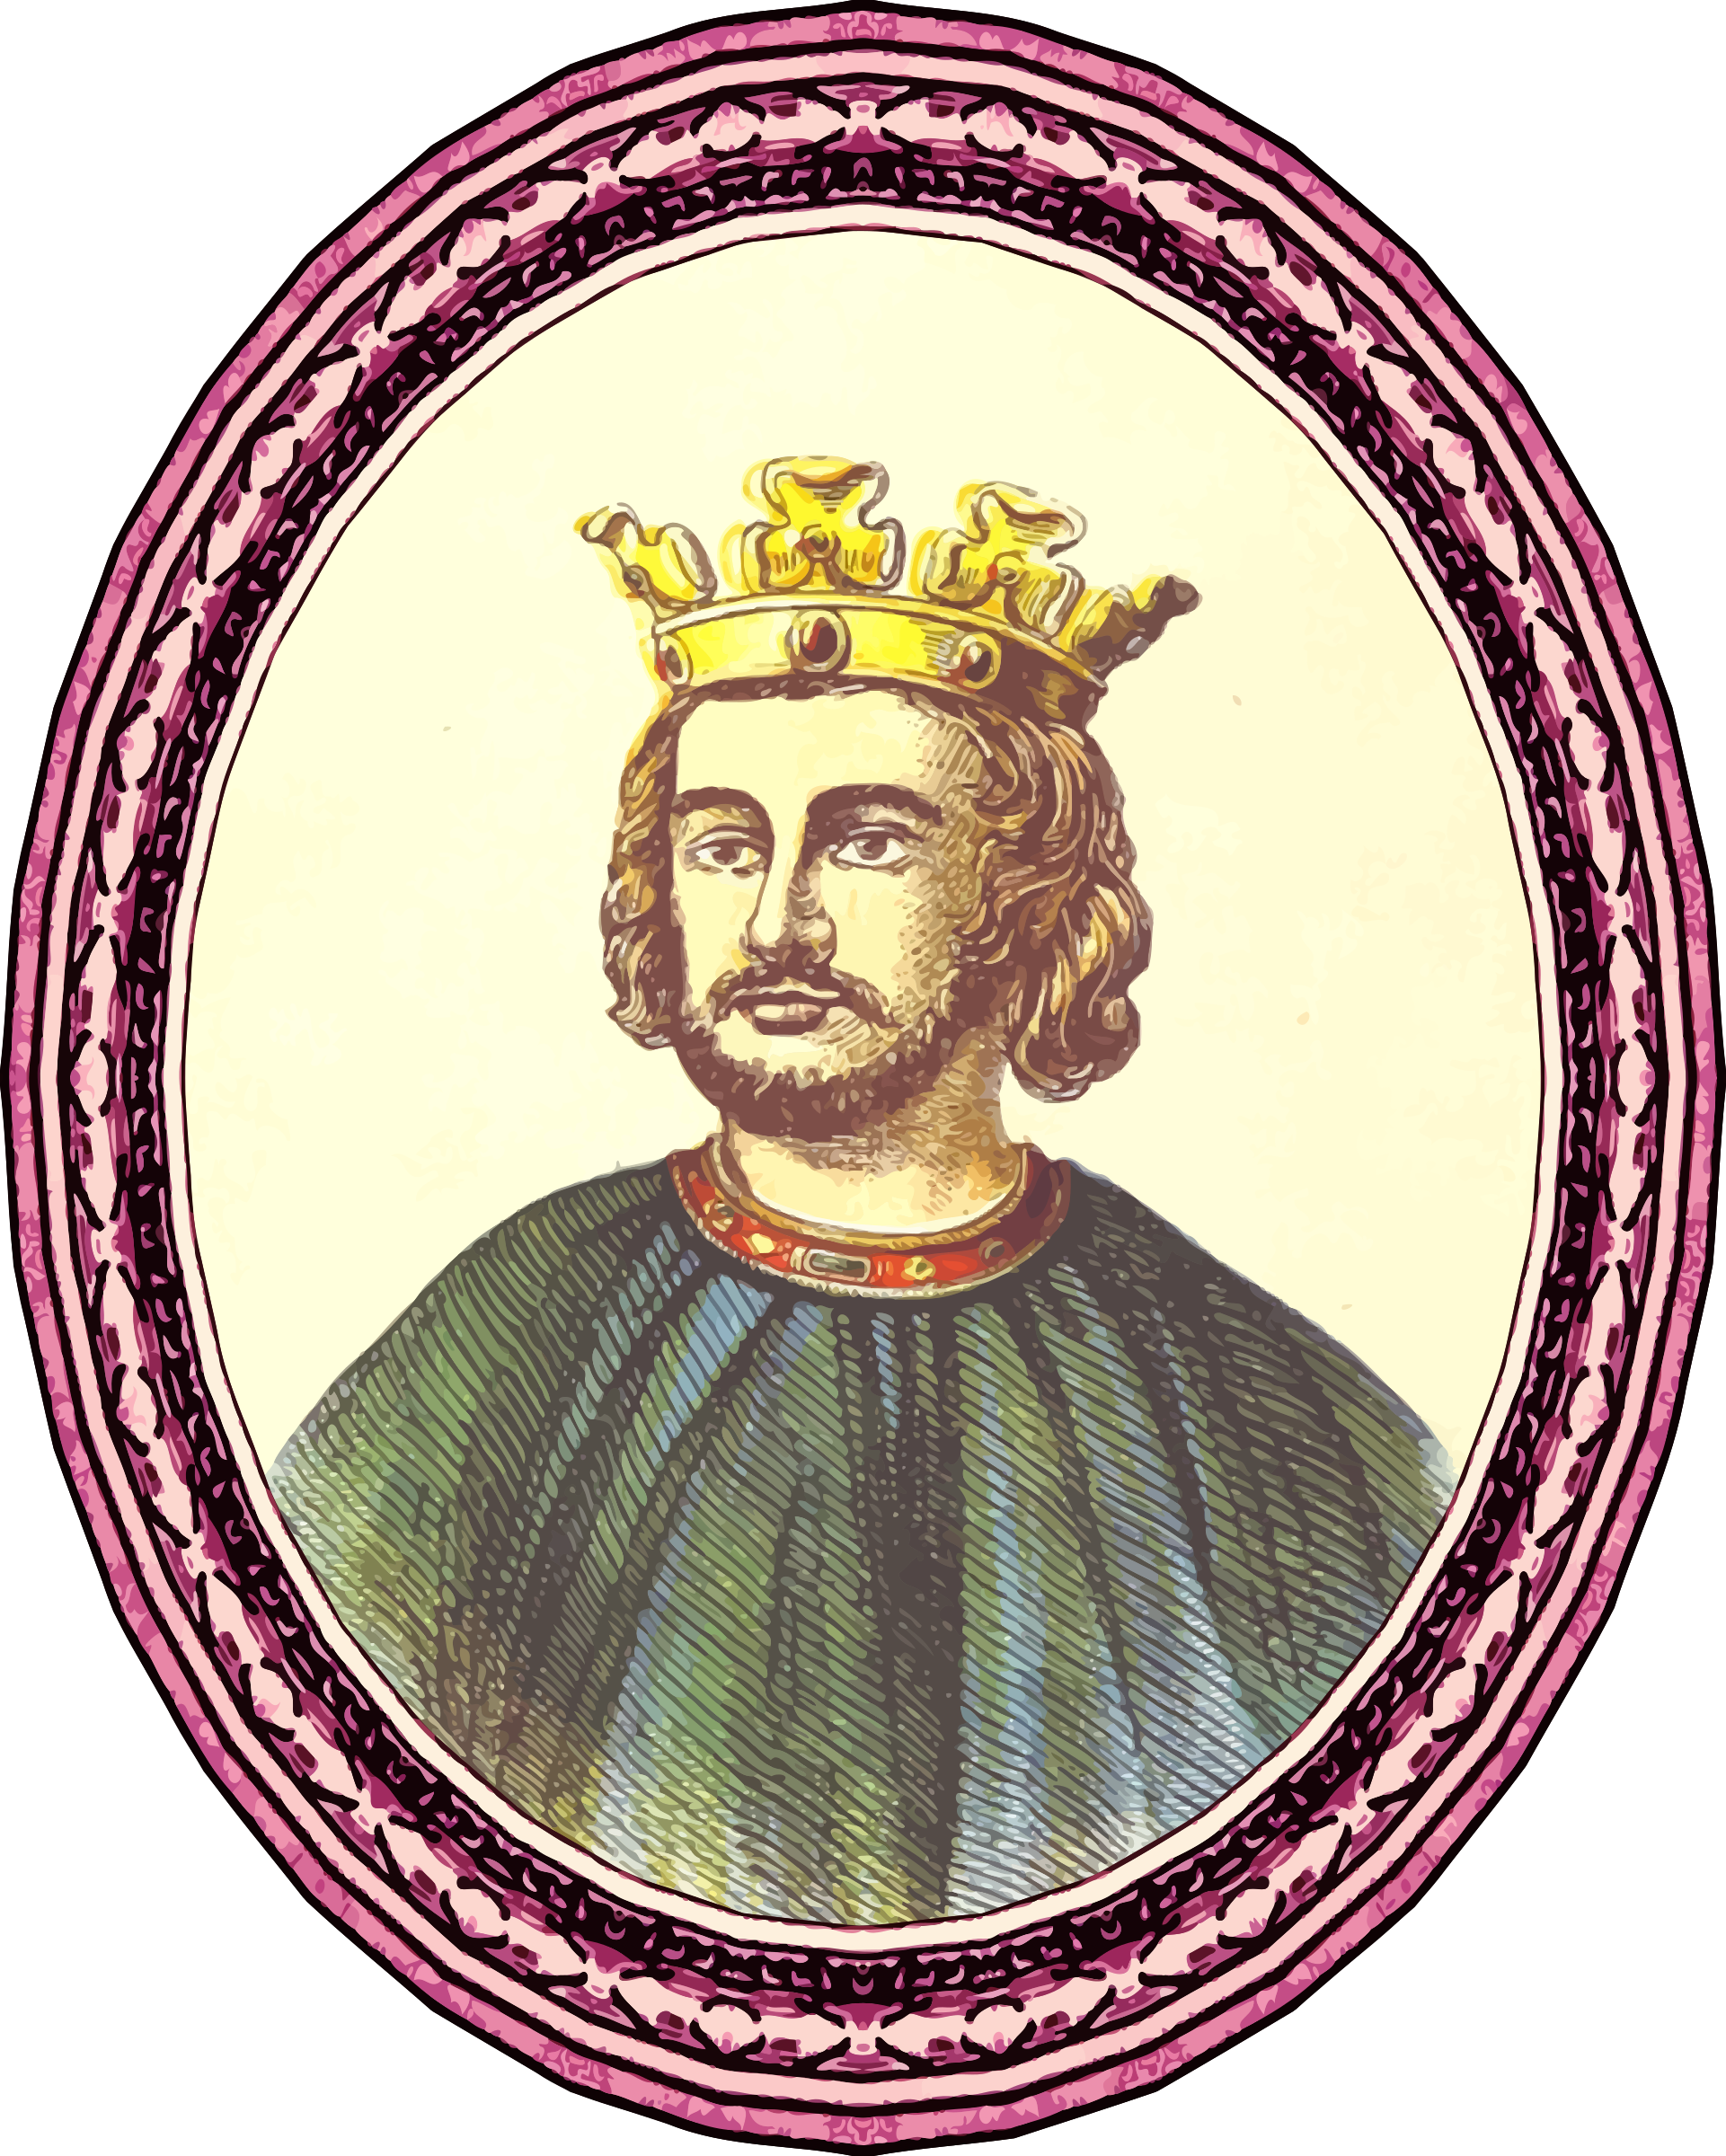 King John (framed) by Firkin